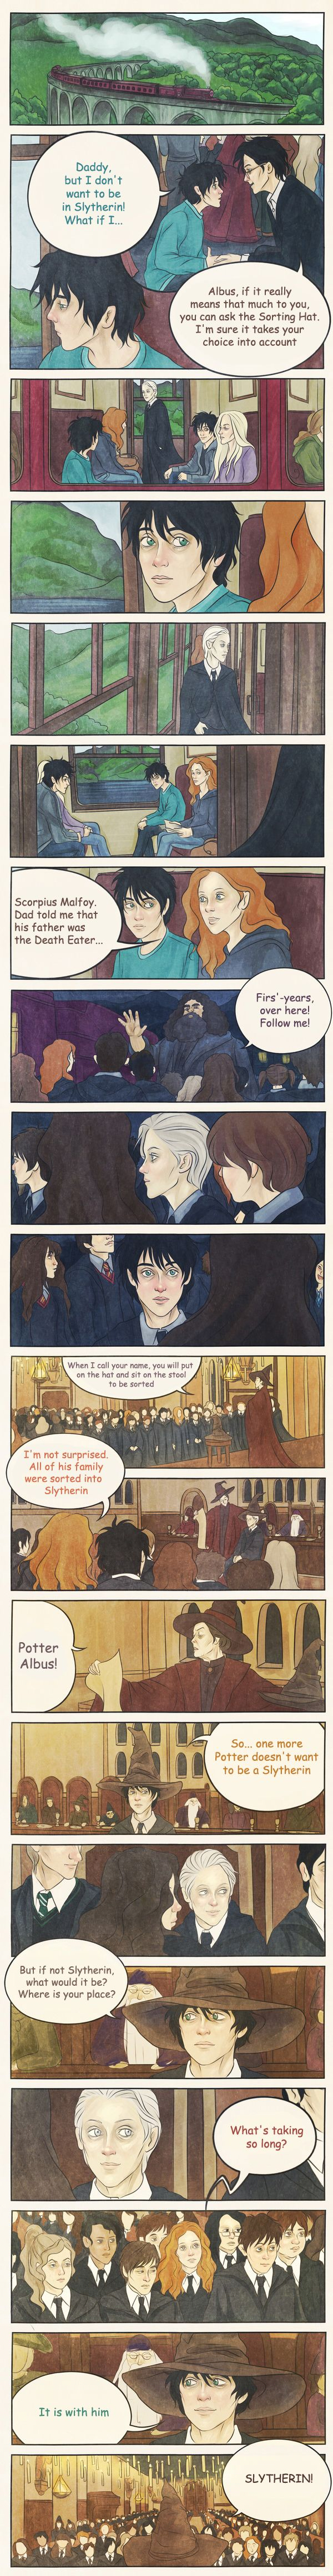 Not Slytherin? by AnastasiaMantihora.deviantart.com on @deviantART. The sorting of Albus Severus Potter